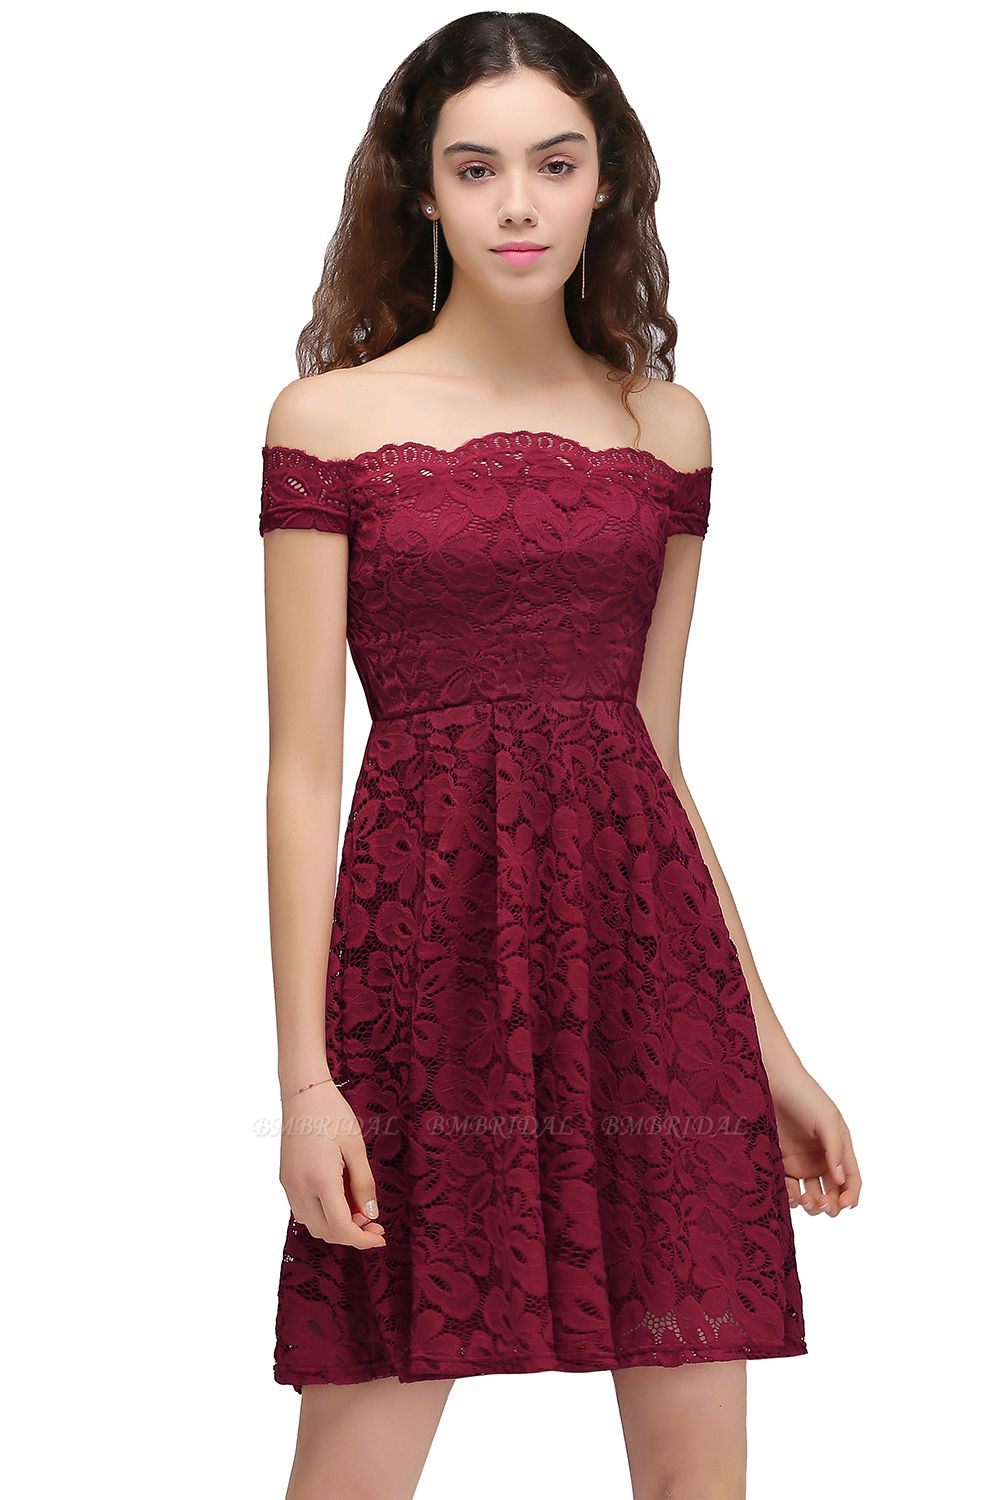 BMbridal A-Line Off-the-shoulder Short Burgundy Lace Homecoming Dress